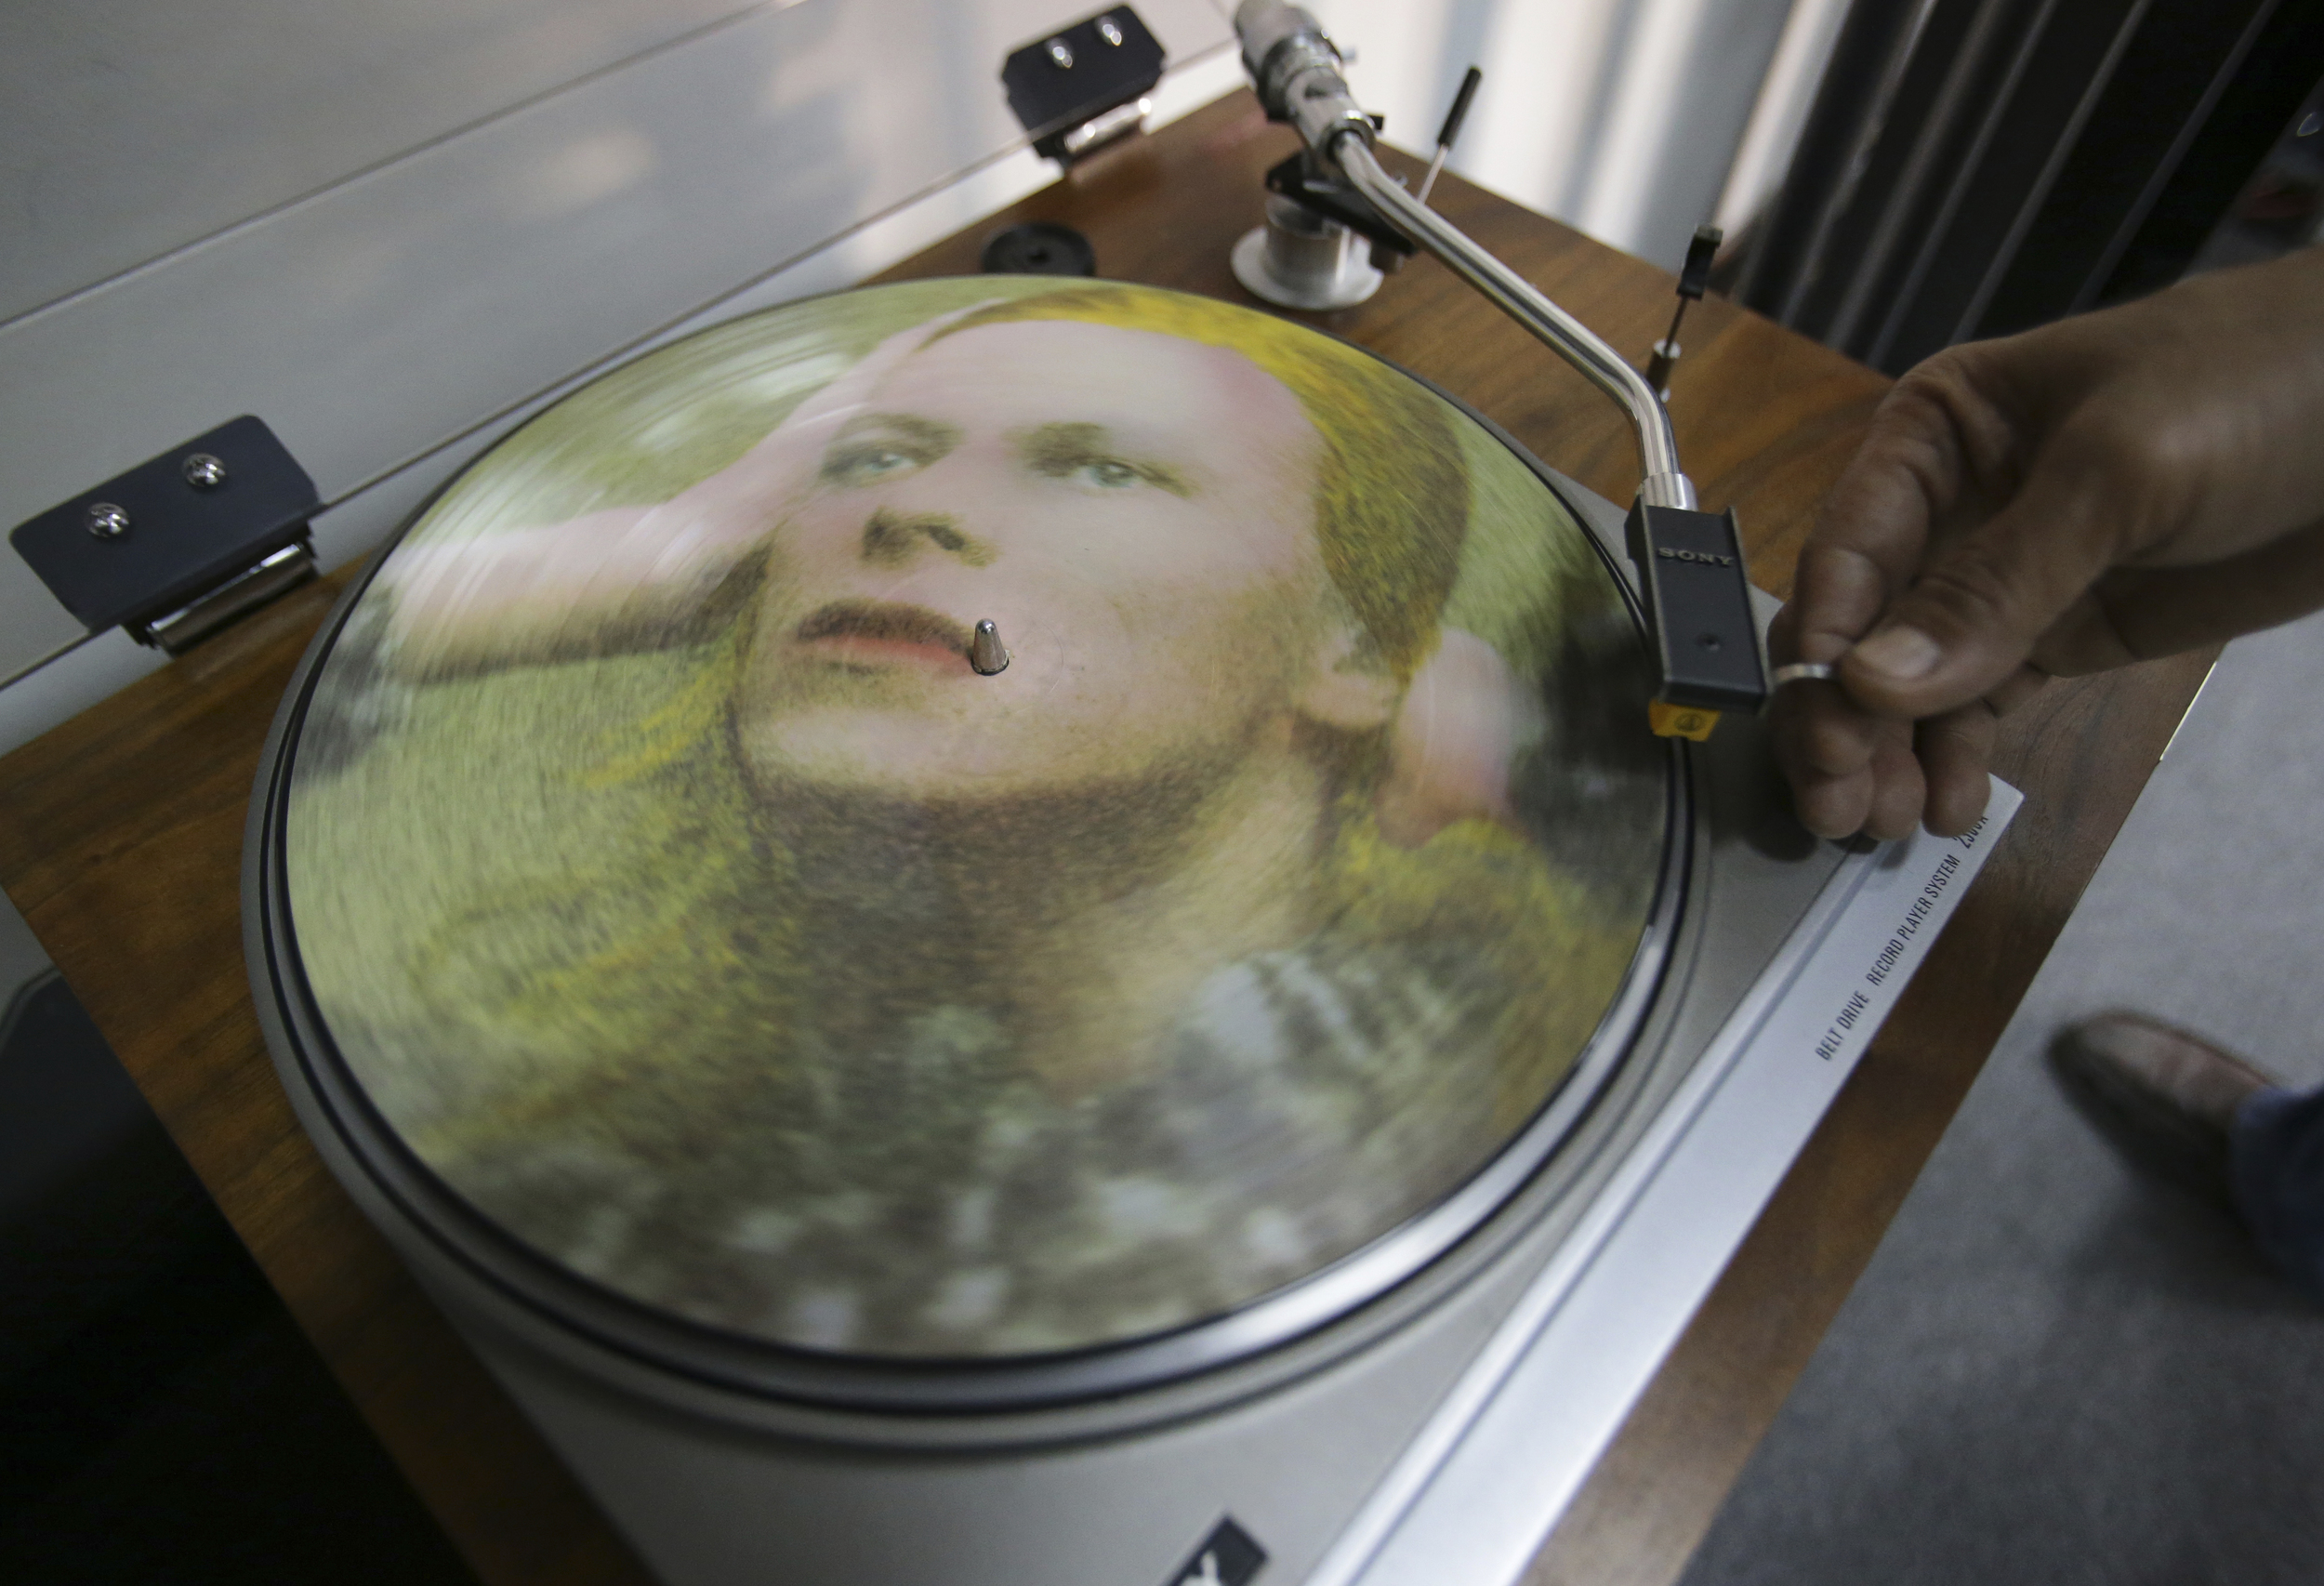 In this Tuesday, Jan. 12, 2016 photo, Rene Rivo, a Filipino David Bowie fan, plays a picture disc of Bowie's Hunky Dory on a turntable at his shop in suburban Paranaque, south of Manila, Philippines. (Aaron Favila, File/AP)